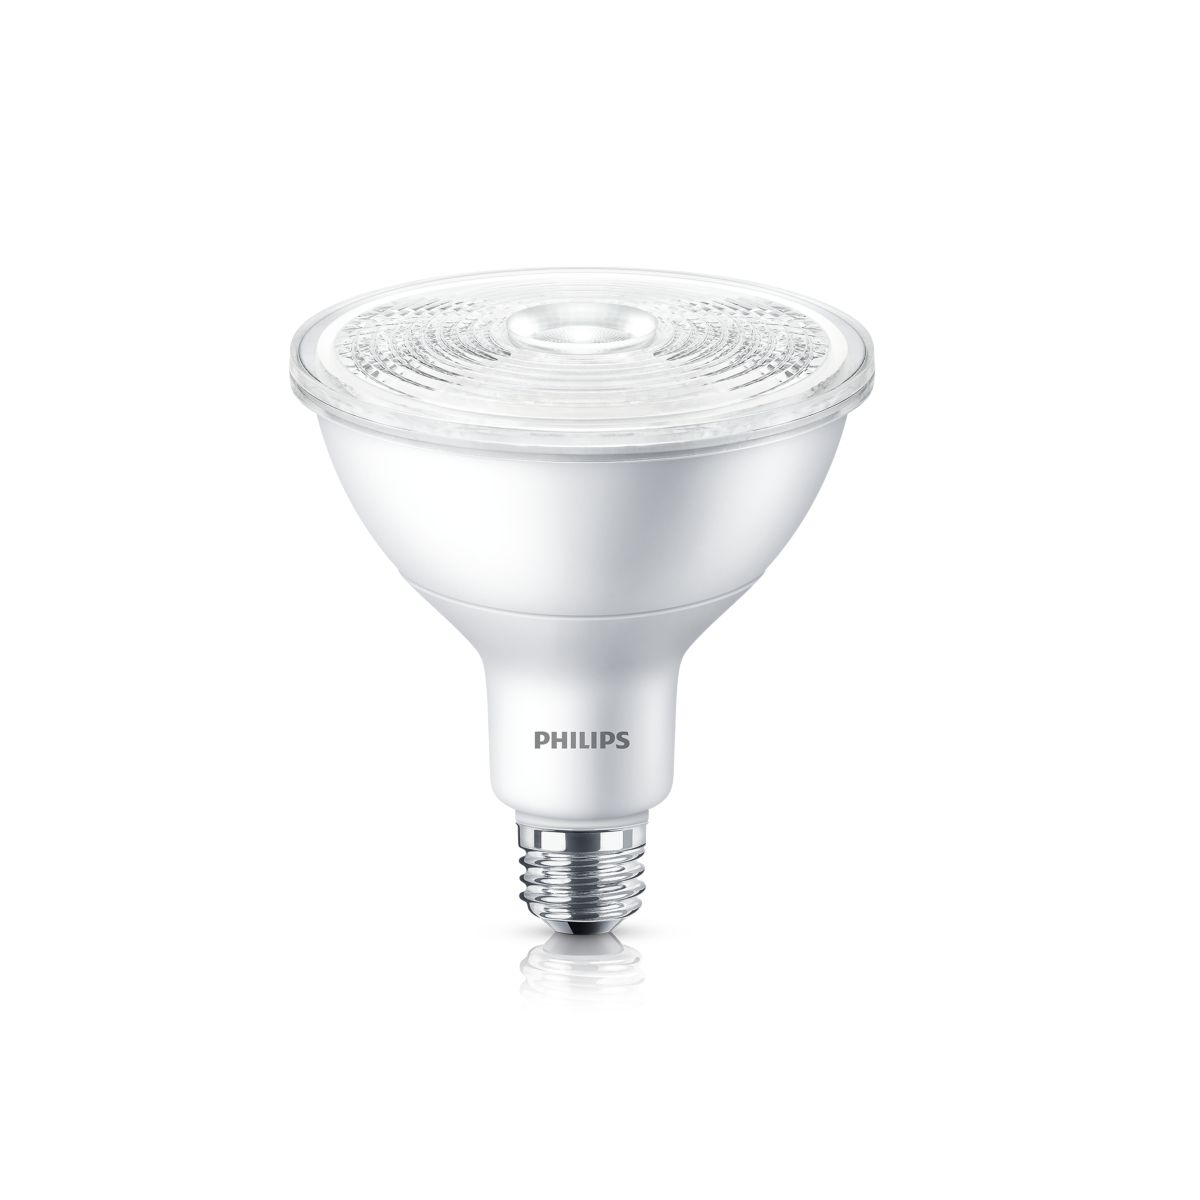 Philips 13w PAR38 Dimmable LED Flood 25 White 3000k AirFlux Light Bulb